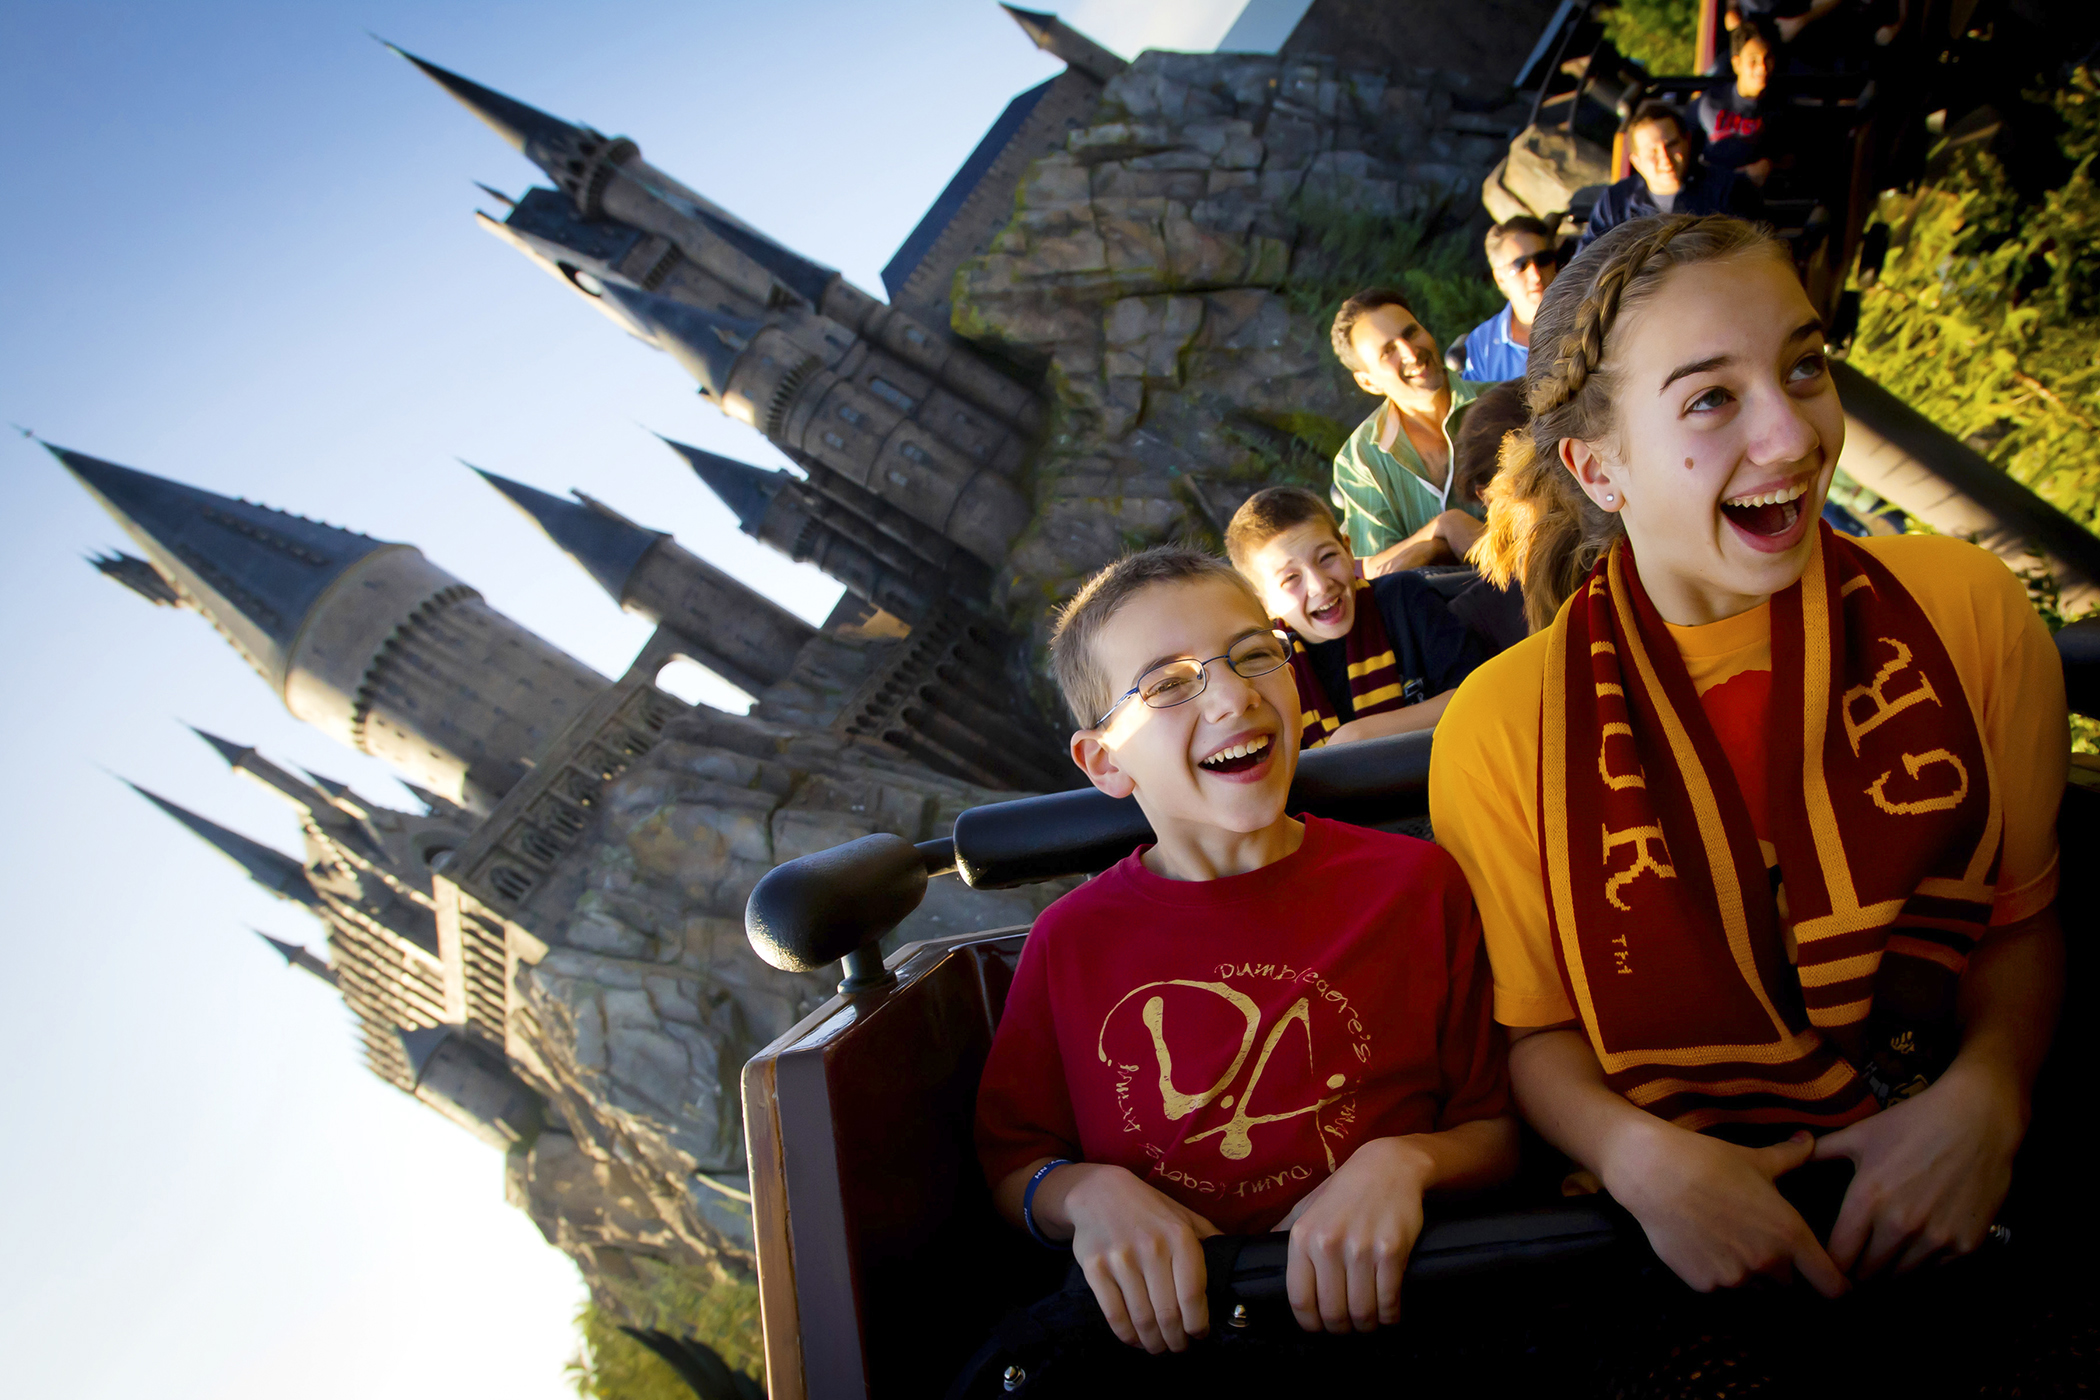 On Flight of the Hippogriff at The Wizarding World of Harry Potter